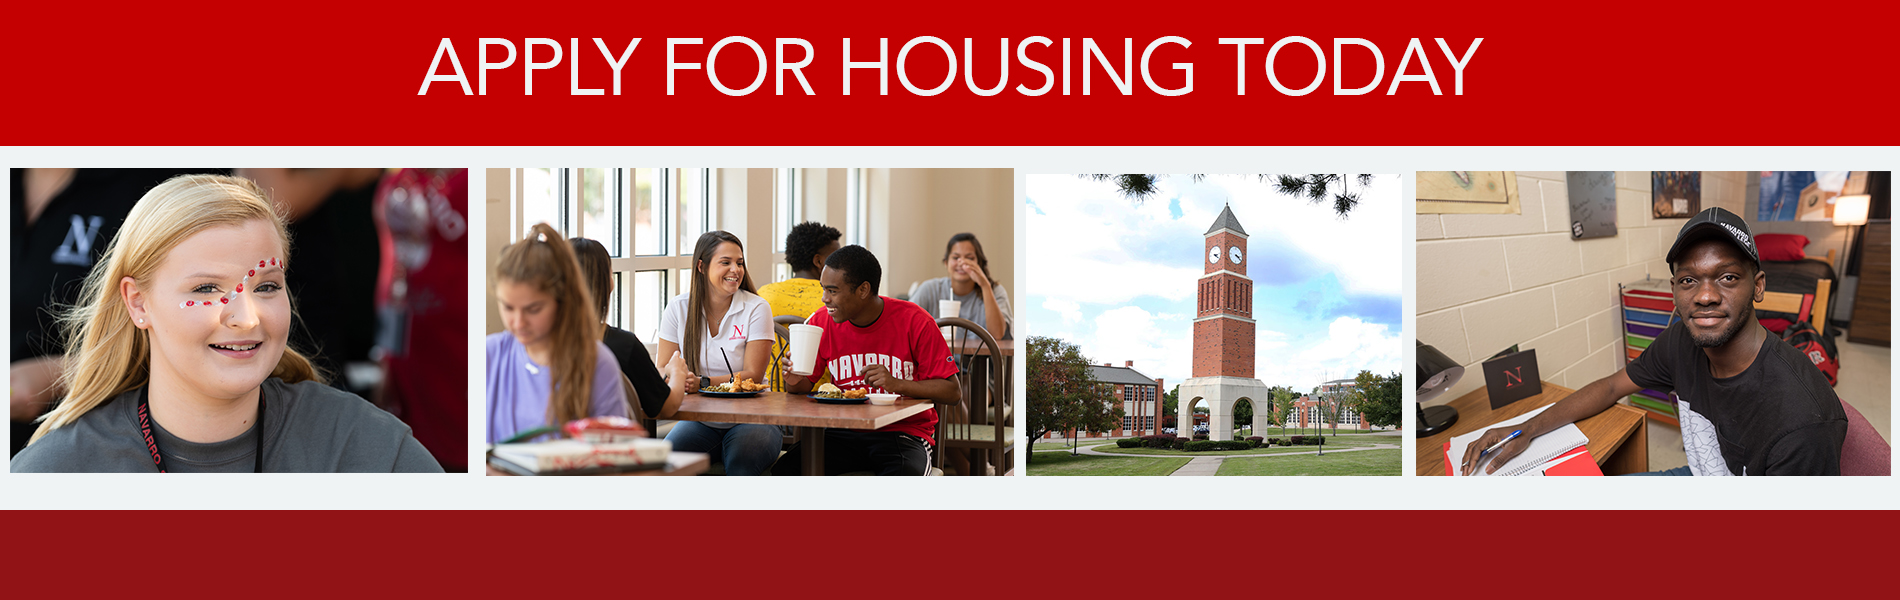 Apply for Housing